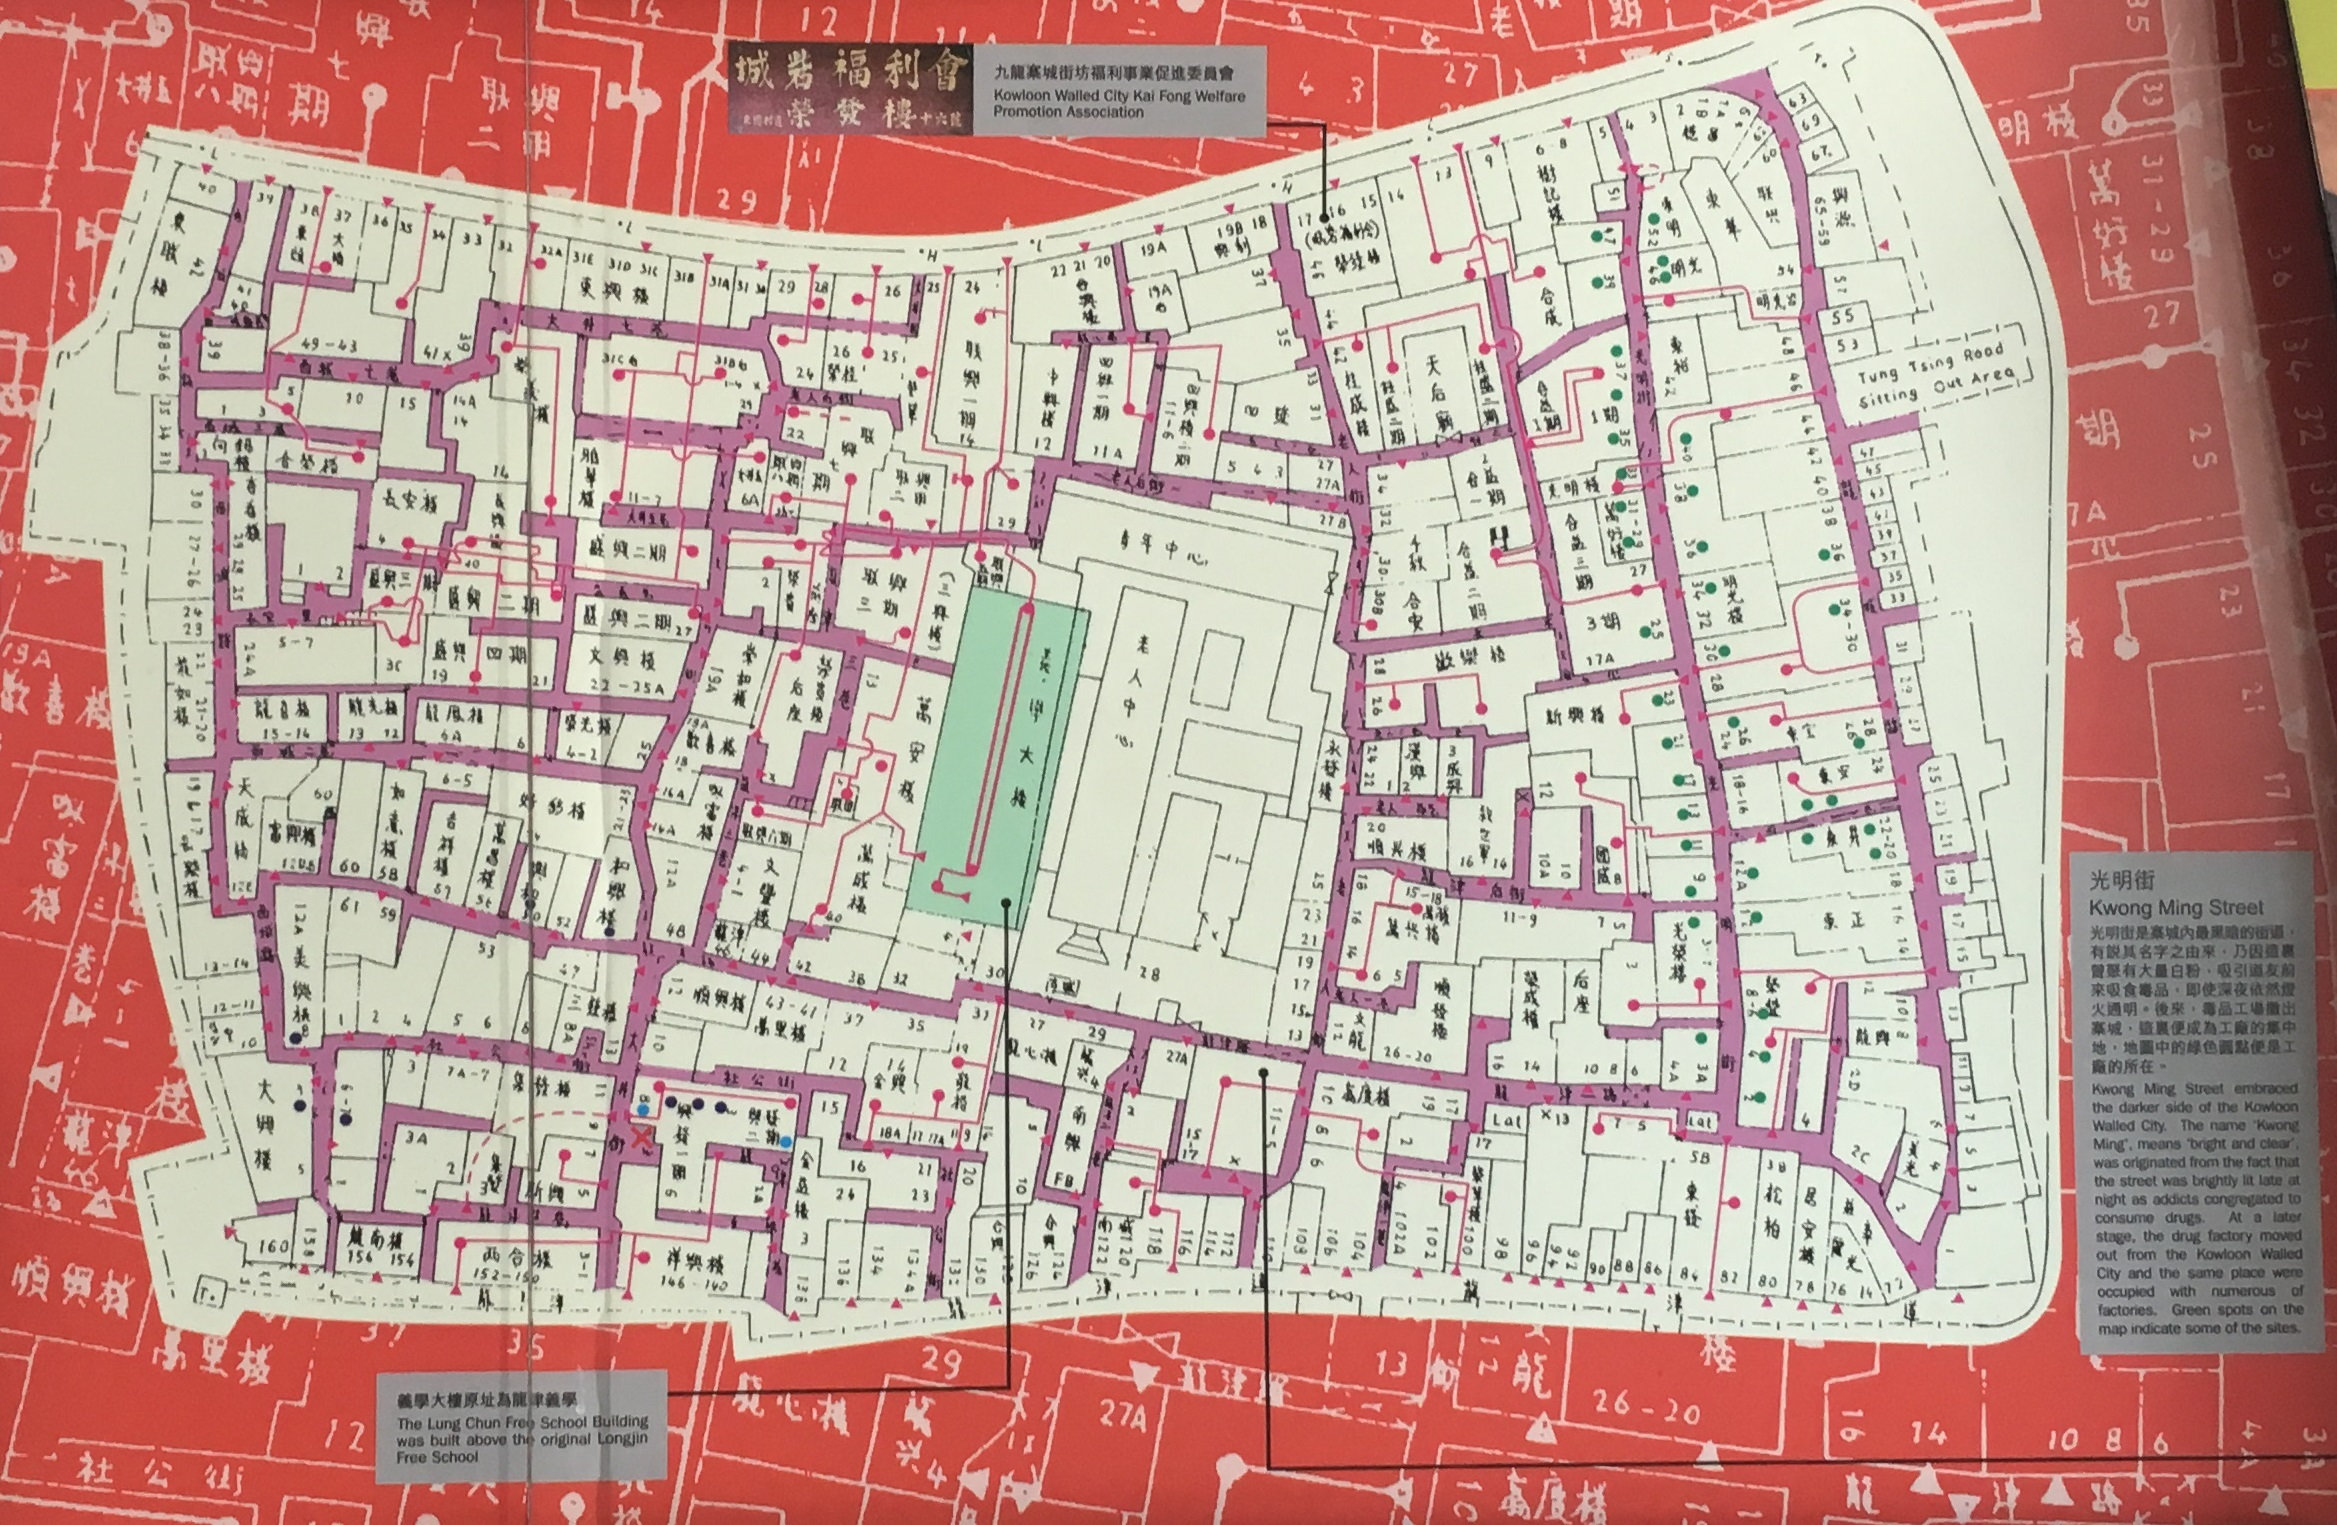 File:Streets in Kowloon Walled City.jpg - Wikimedia Commons on chicago city street map, denver city street map, miami city street map, western street map, philadelphia city street map, beacon hill street map, wan chai street map, taipei city street map, cape town city street map, city of flint street map, boston city street map, london city street map, shanghai city street map, seattle city street map, jerusalem city street map, kiev city street map, kathmandu city street map, birmingham city street map, austin city street map, houston city street map,